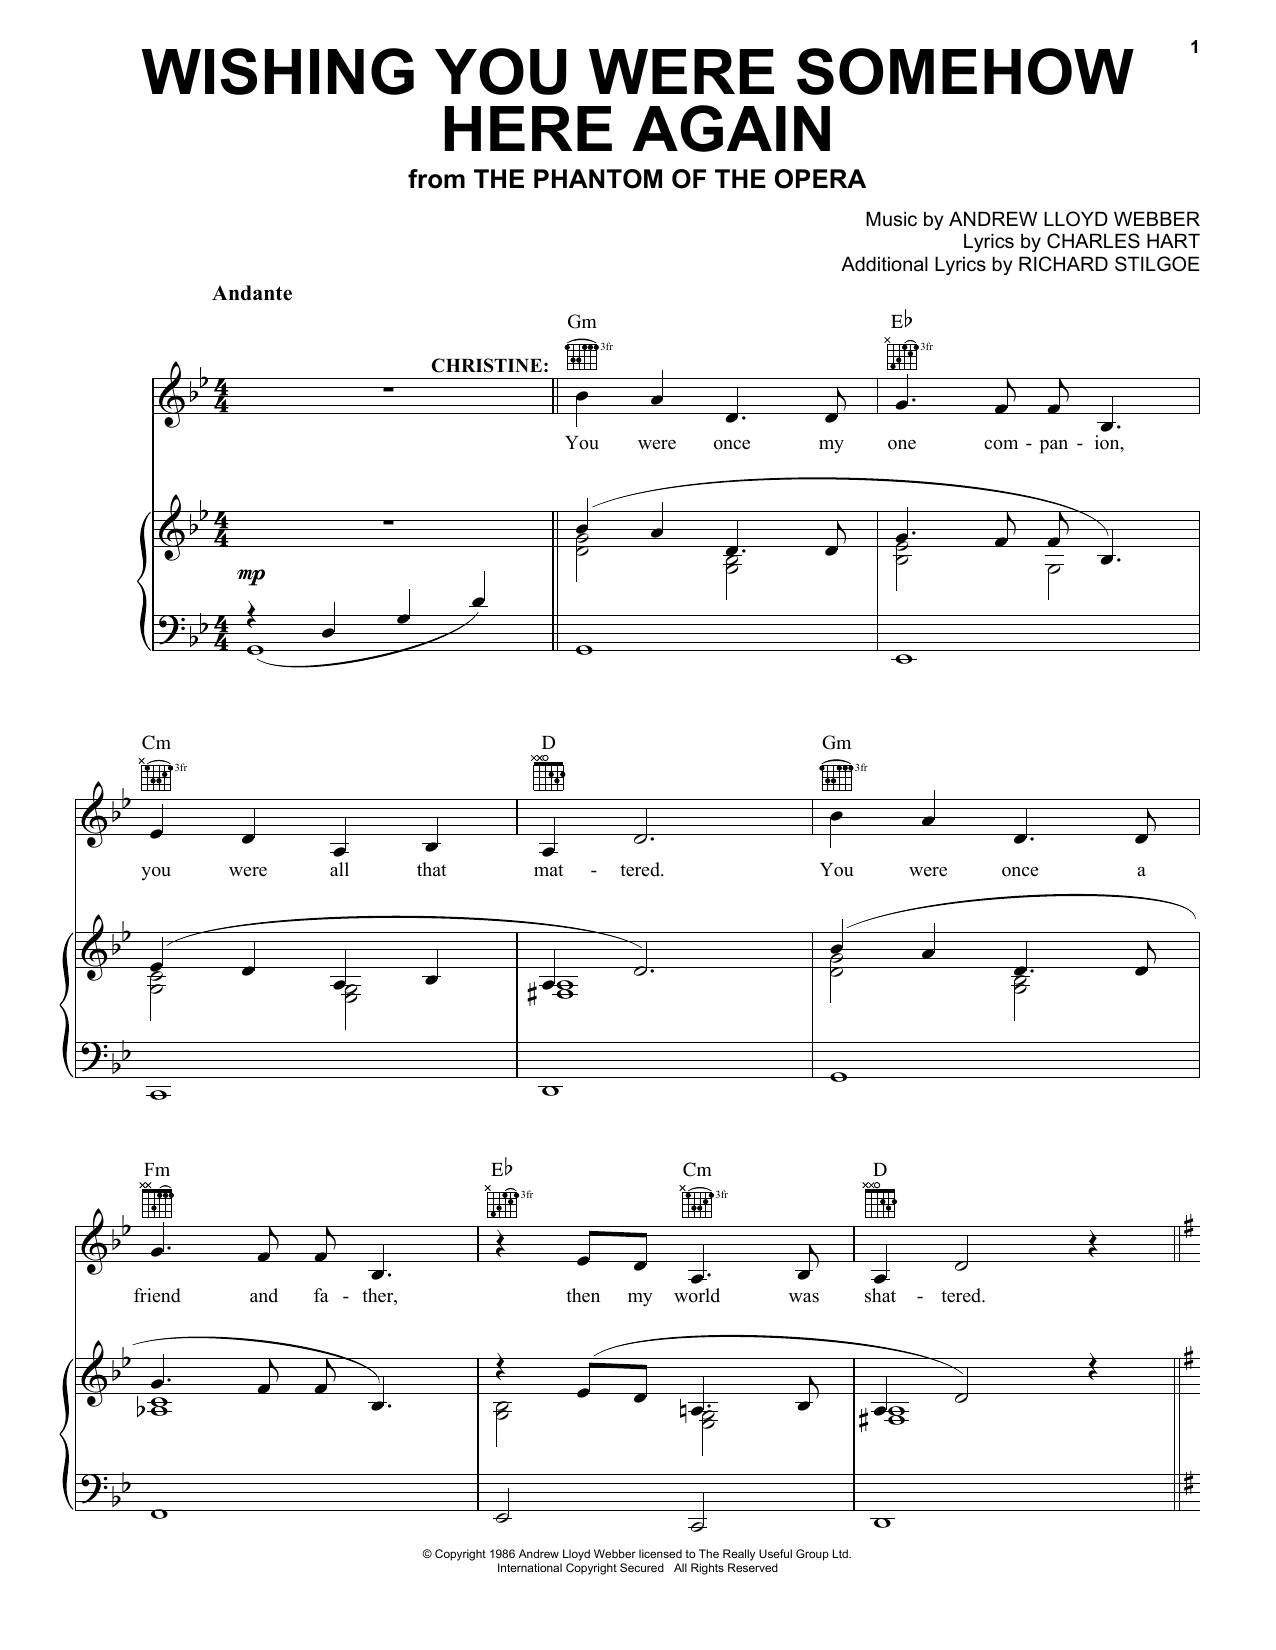 Andrew Lloyd Webber Wishing You Were Somehow Here Again (from The Phantom Of The Opera) sheet music notes and chords. Download Printable PDF.